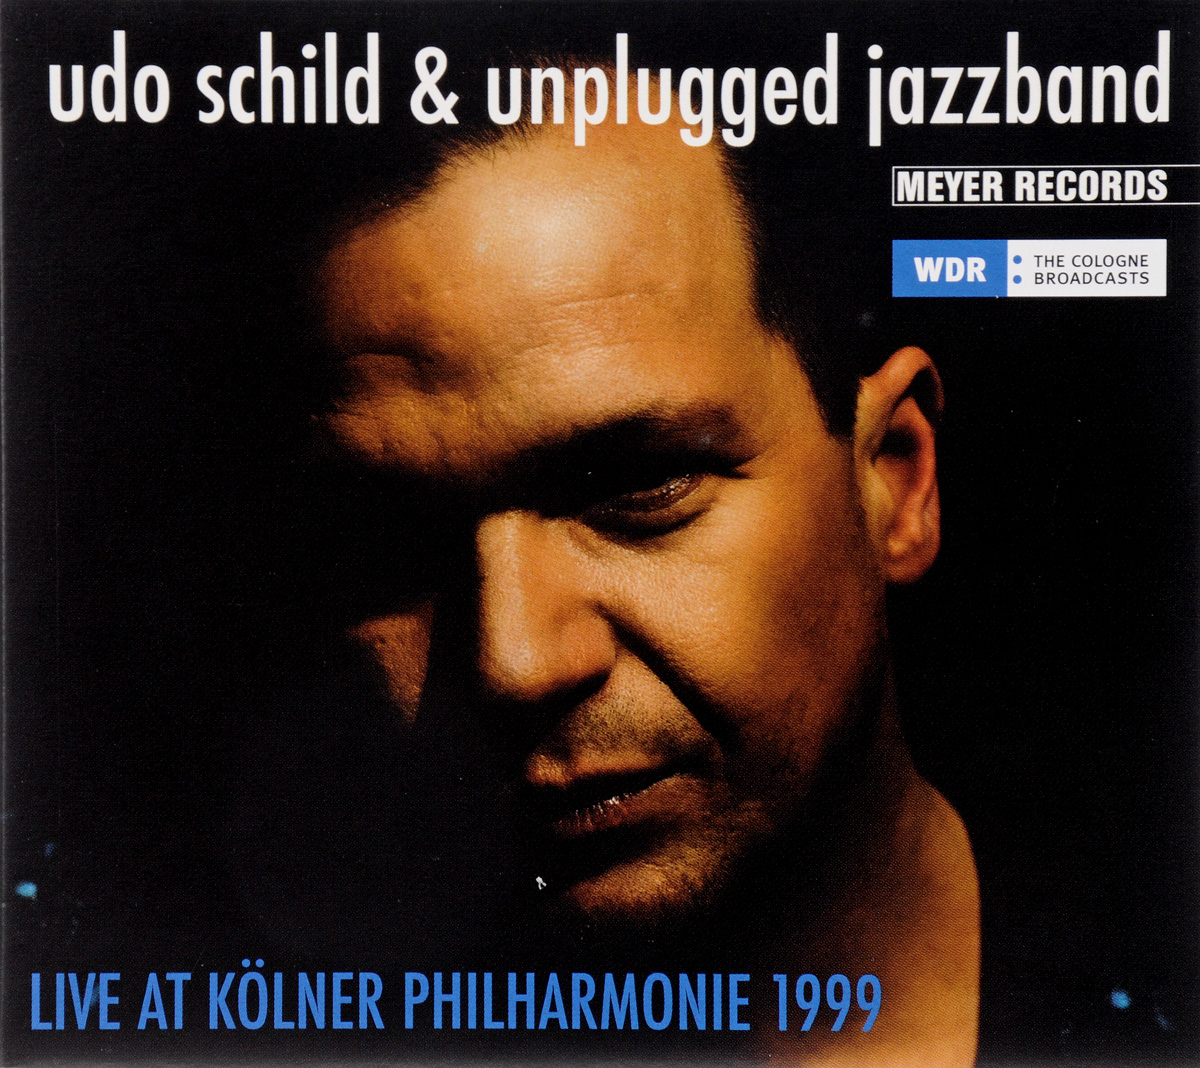 Udo Schild & Unplugged Jazzband. Live At Koelner Philharmonie 1999 grigory sokolov schubert beethoven live at the berlin philharmonie